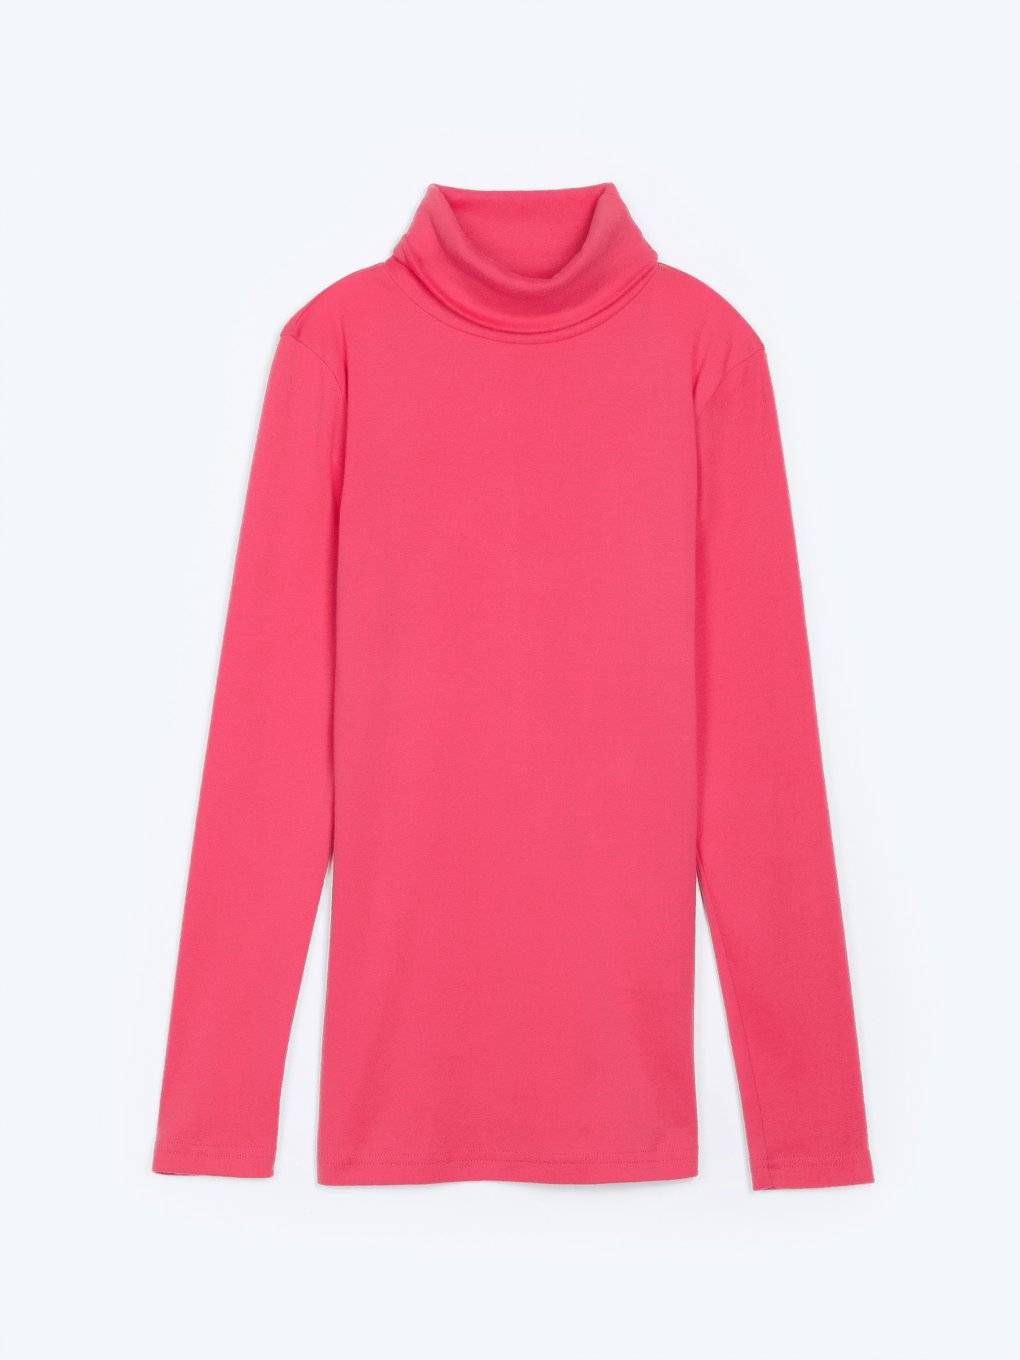 Roll neck t-shirt